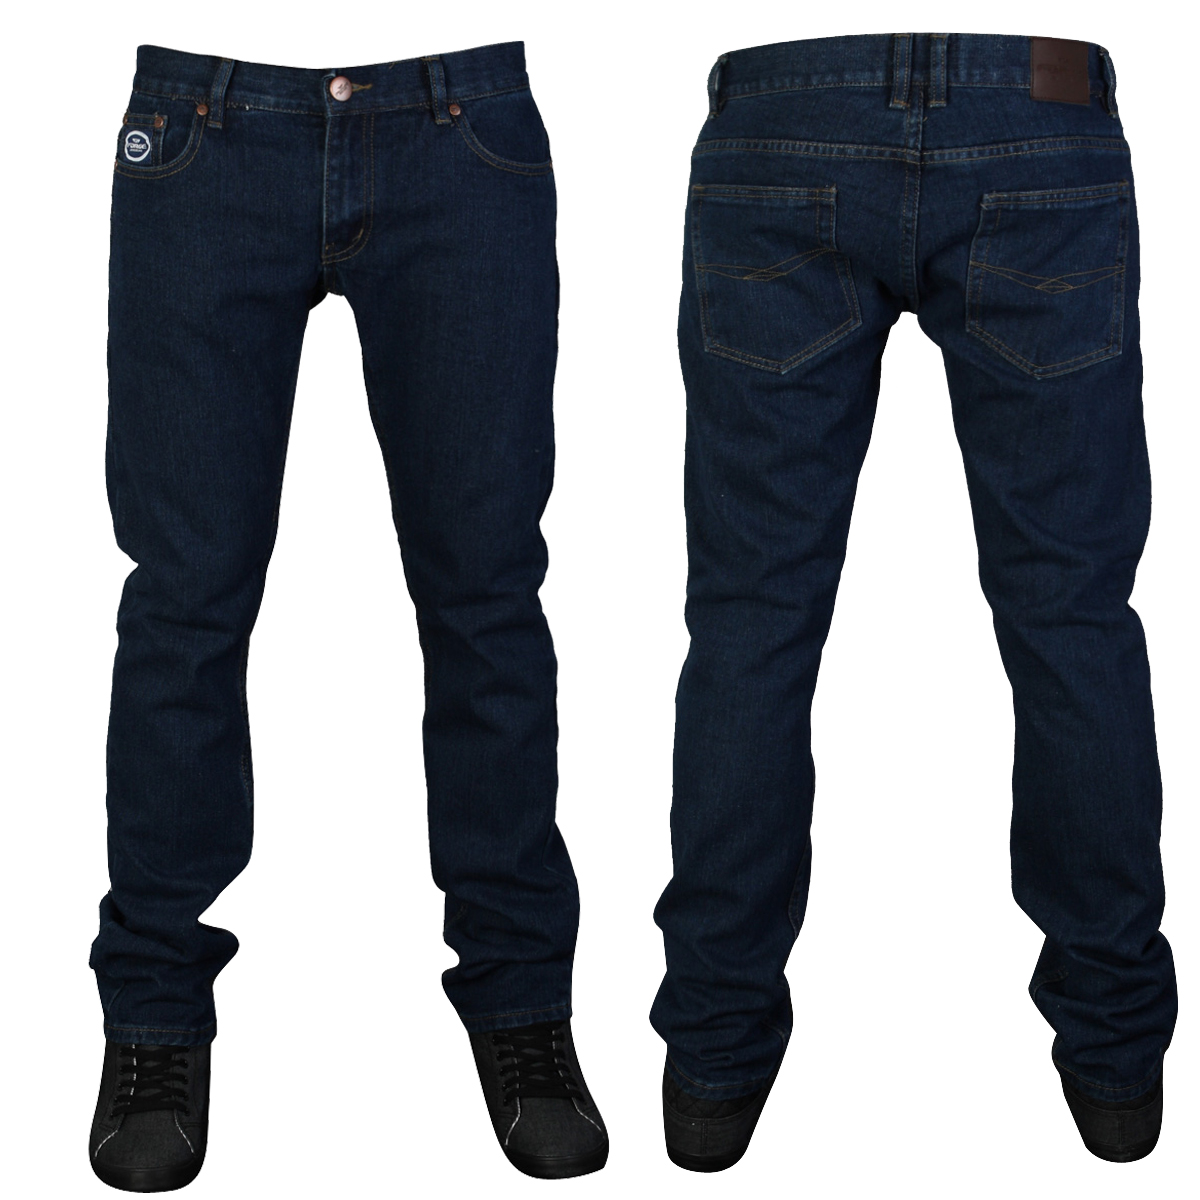 Mens Denim Jeans Photo Album - Get Your Fashion Style